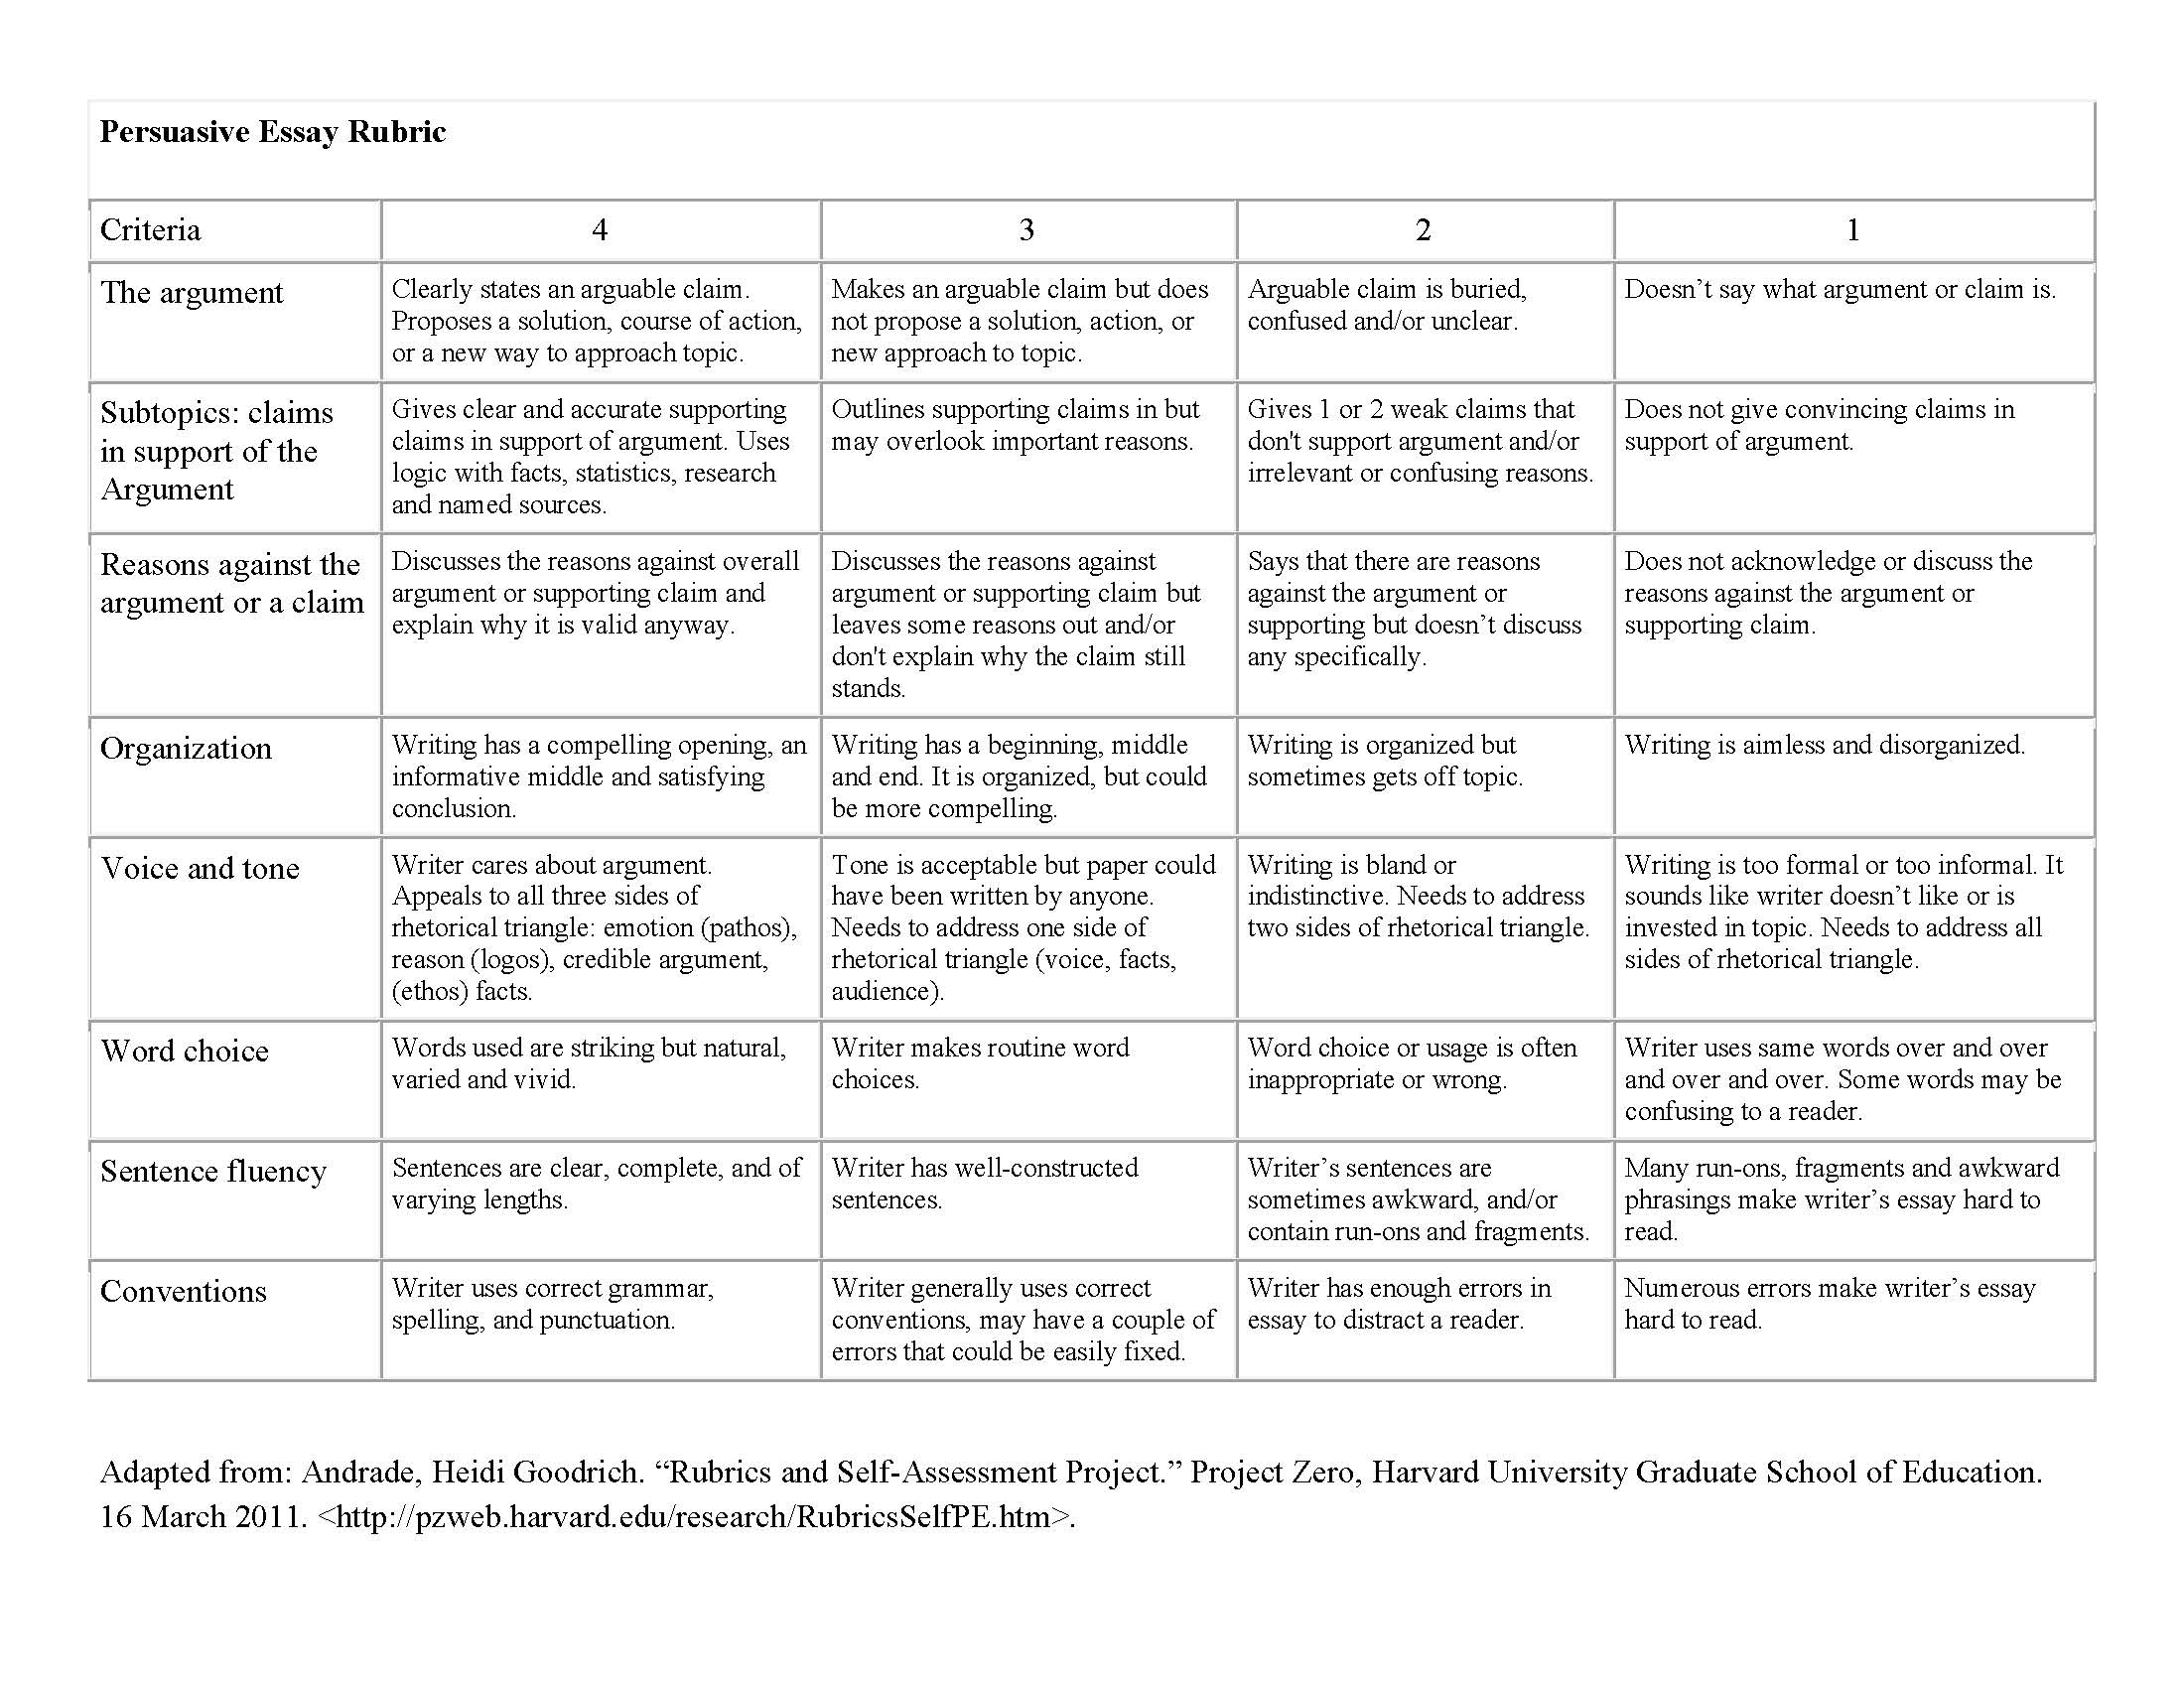 persuasive essay rubric elementary school As a new york city elementary school teacher i am working harder than ever to make sure my students close the this persuasive essay rubric uses standards.